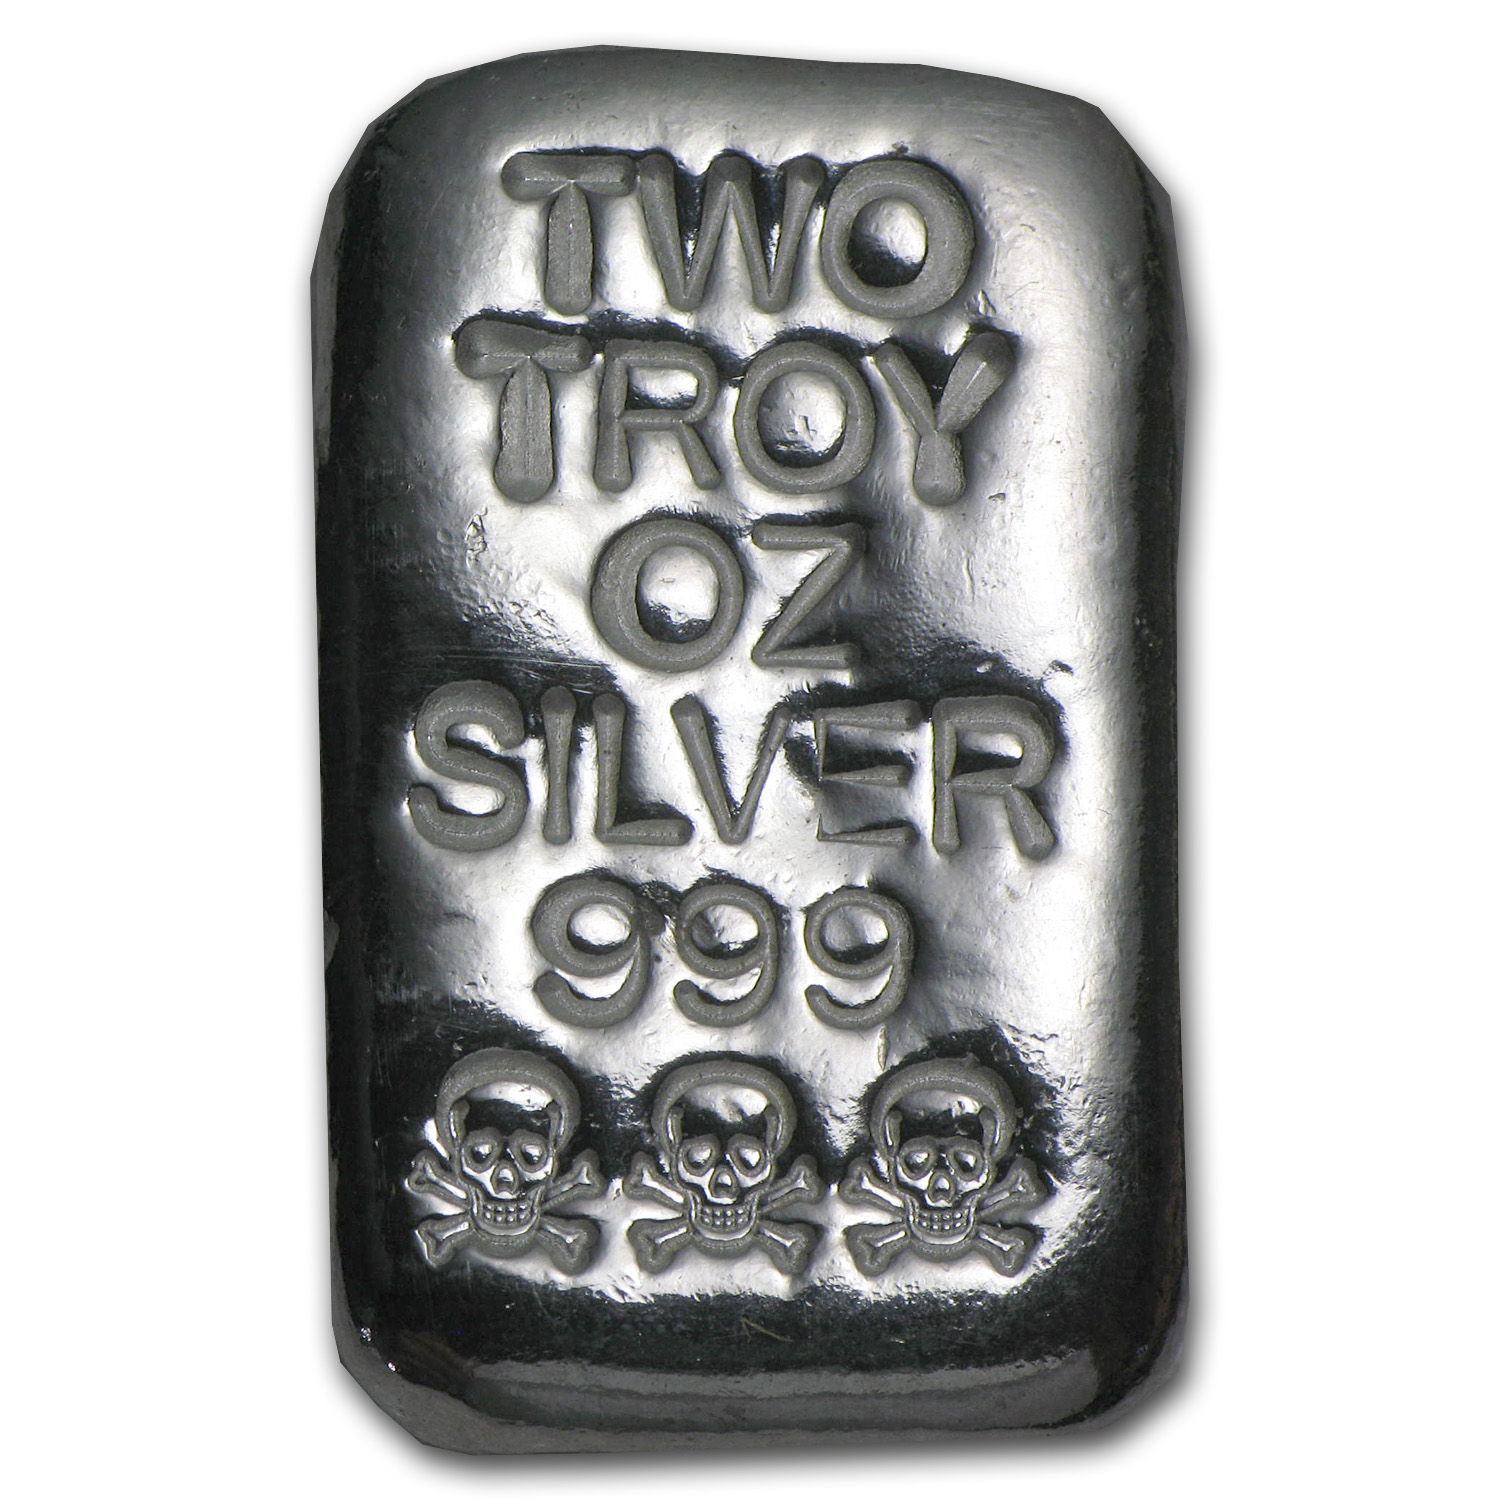 2 oz Silver Bar - Atlantis Mint (Skull & Bones)